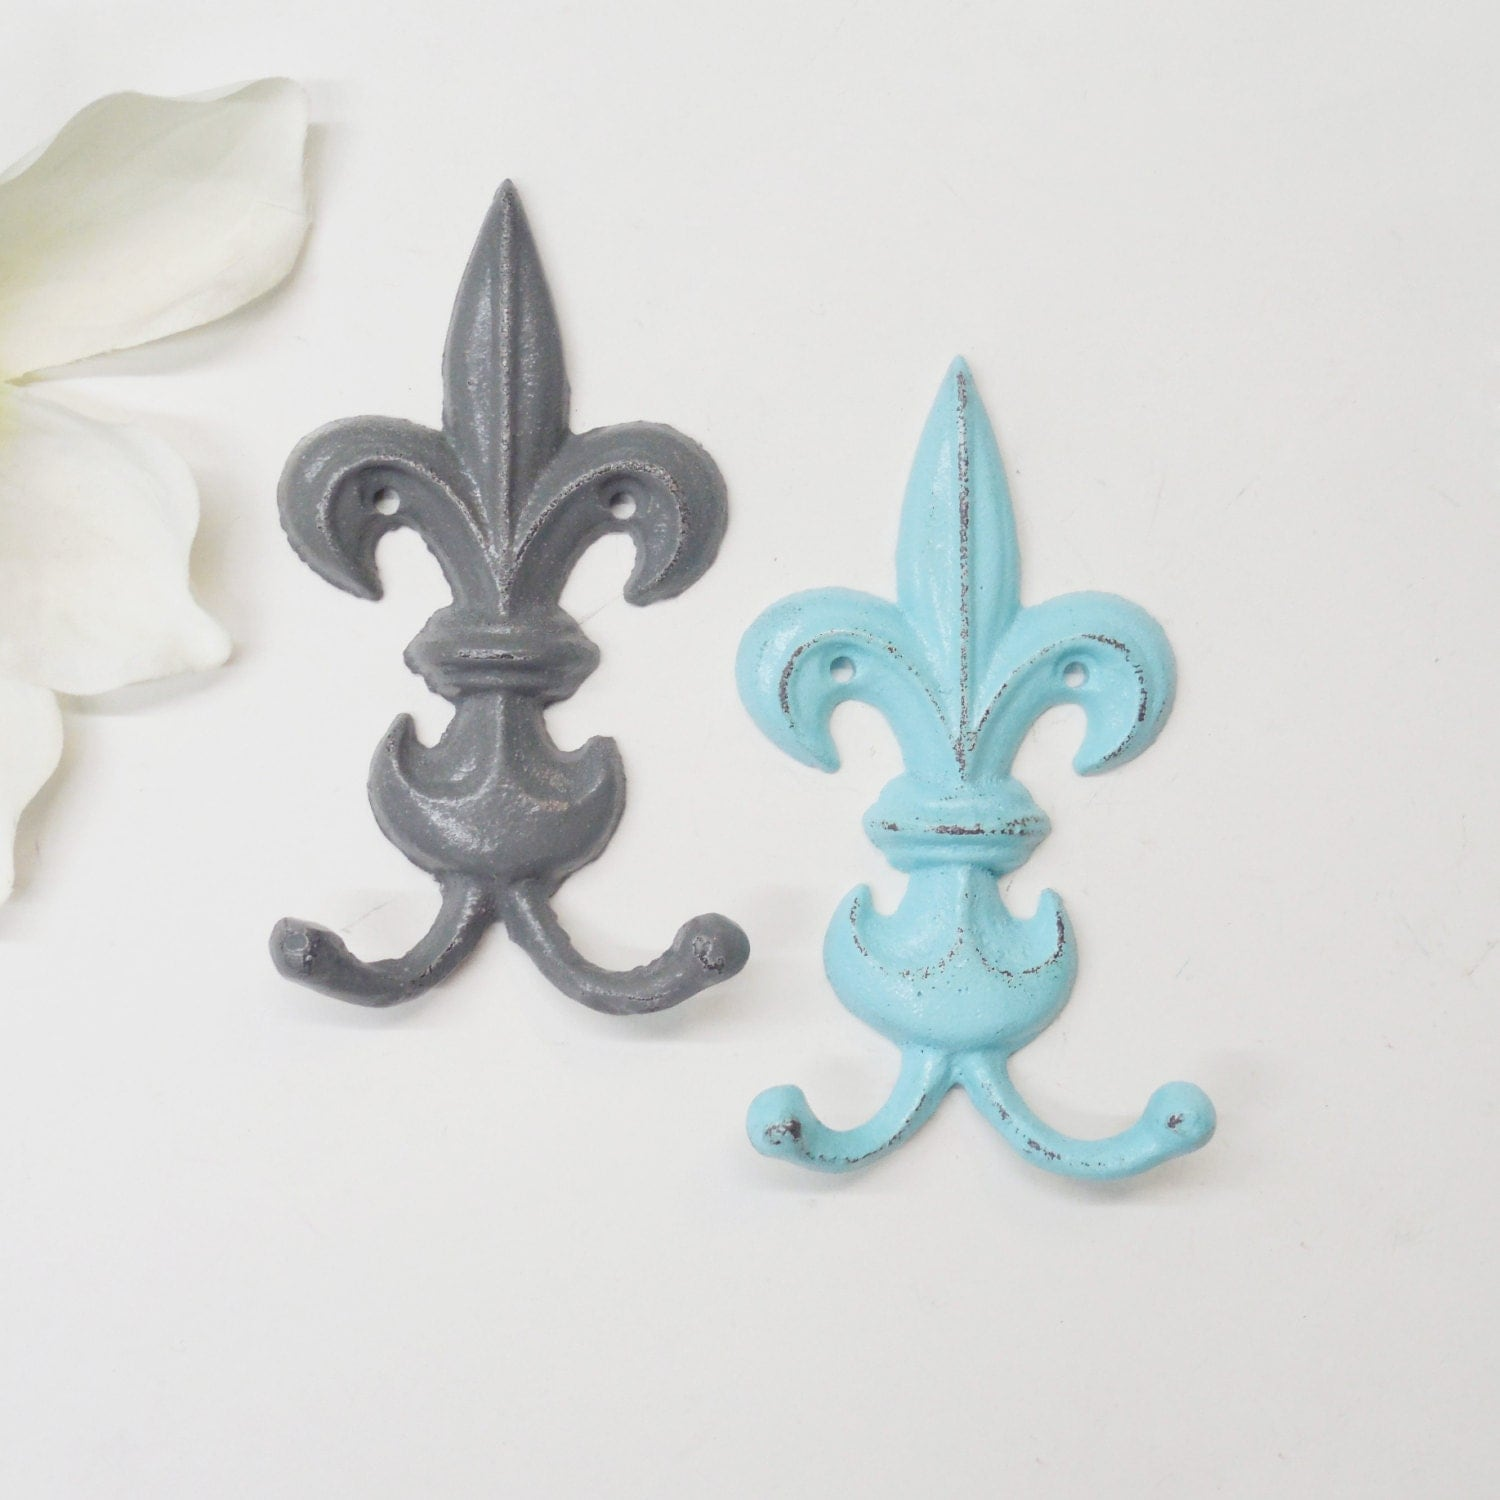 Request a custom order and have something made just for you - Fleur de lis coat hook ...